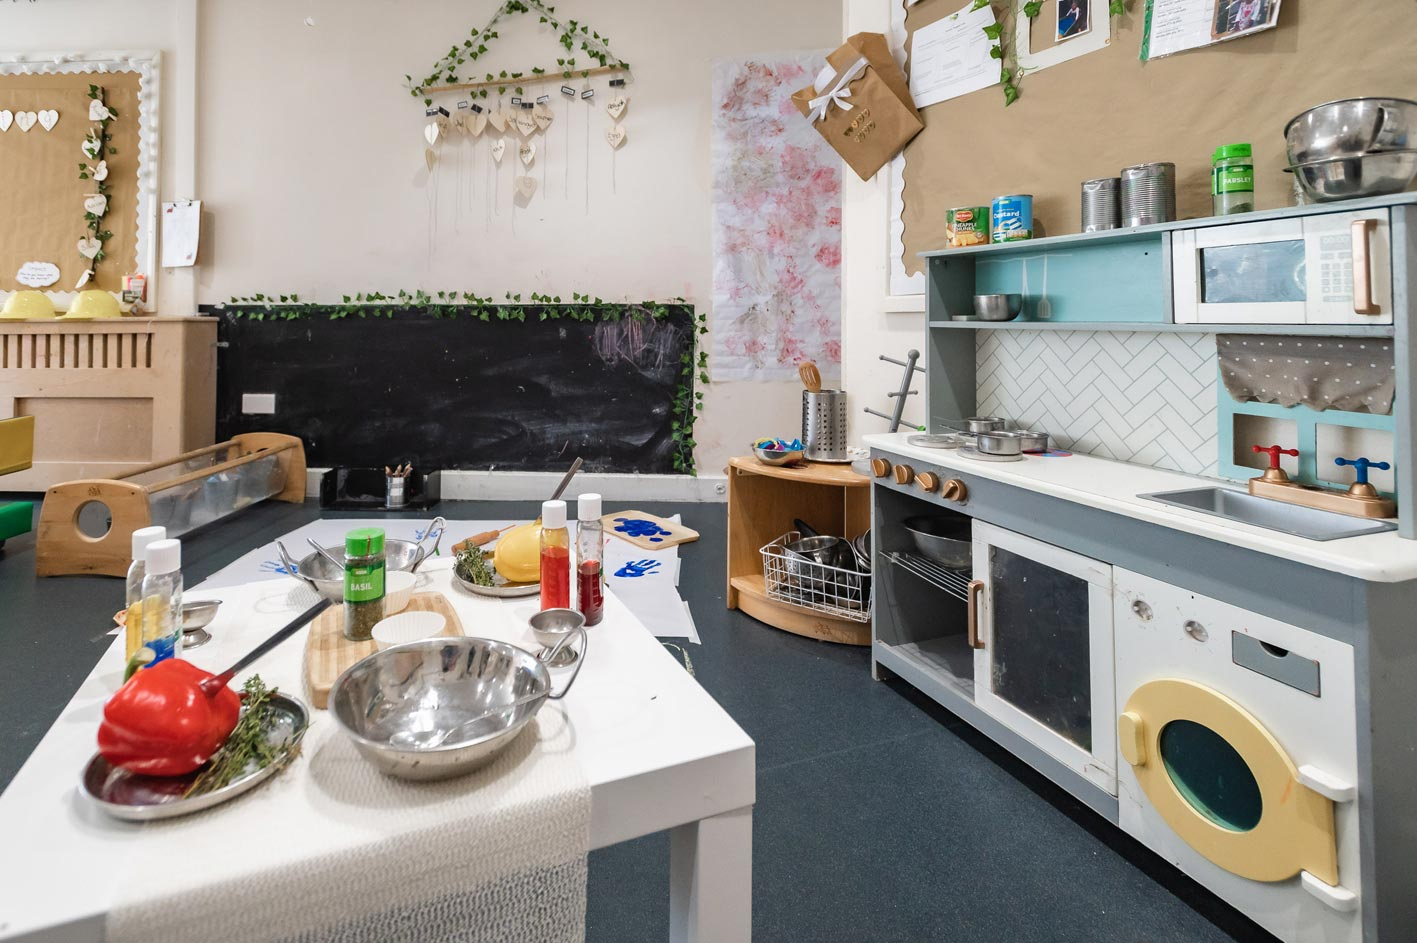 Children love our kitchen area where they can safely learn about cooking and preparing food.